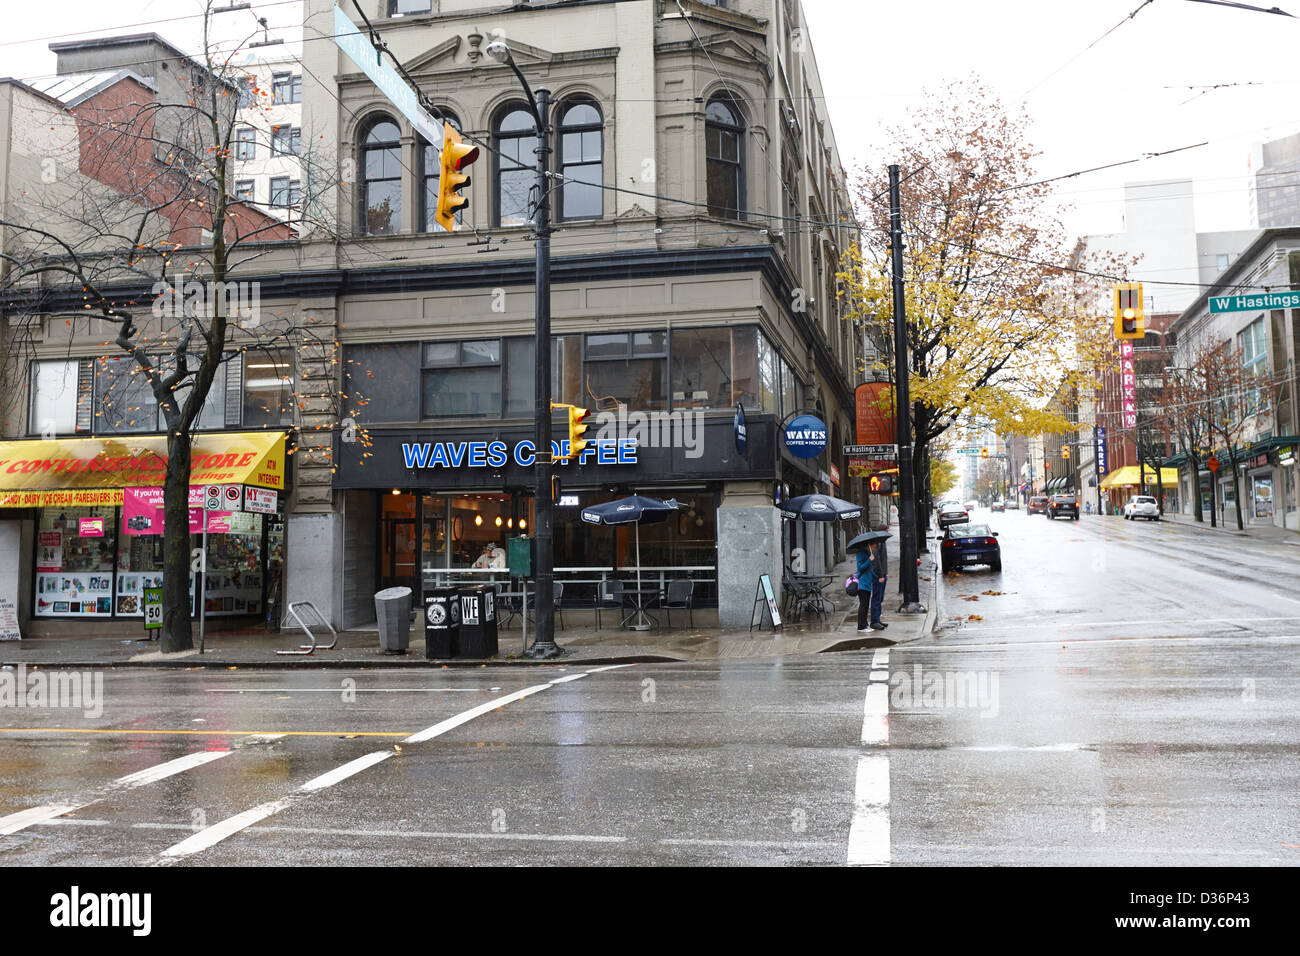 first original waves coffee shop on the corner of west hastings and richards Vancouver BC Canada - Stock Image